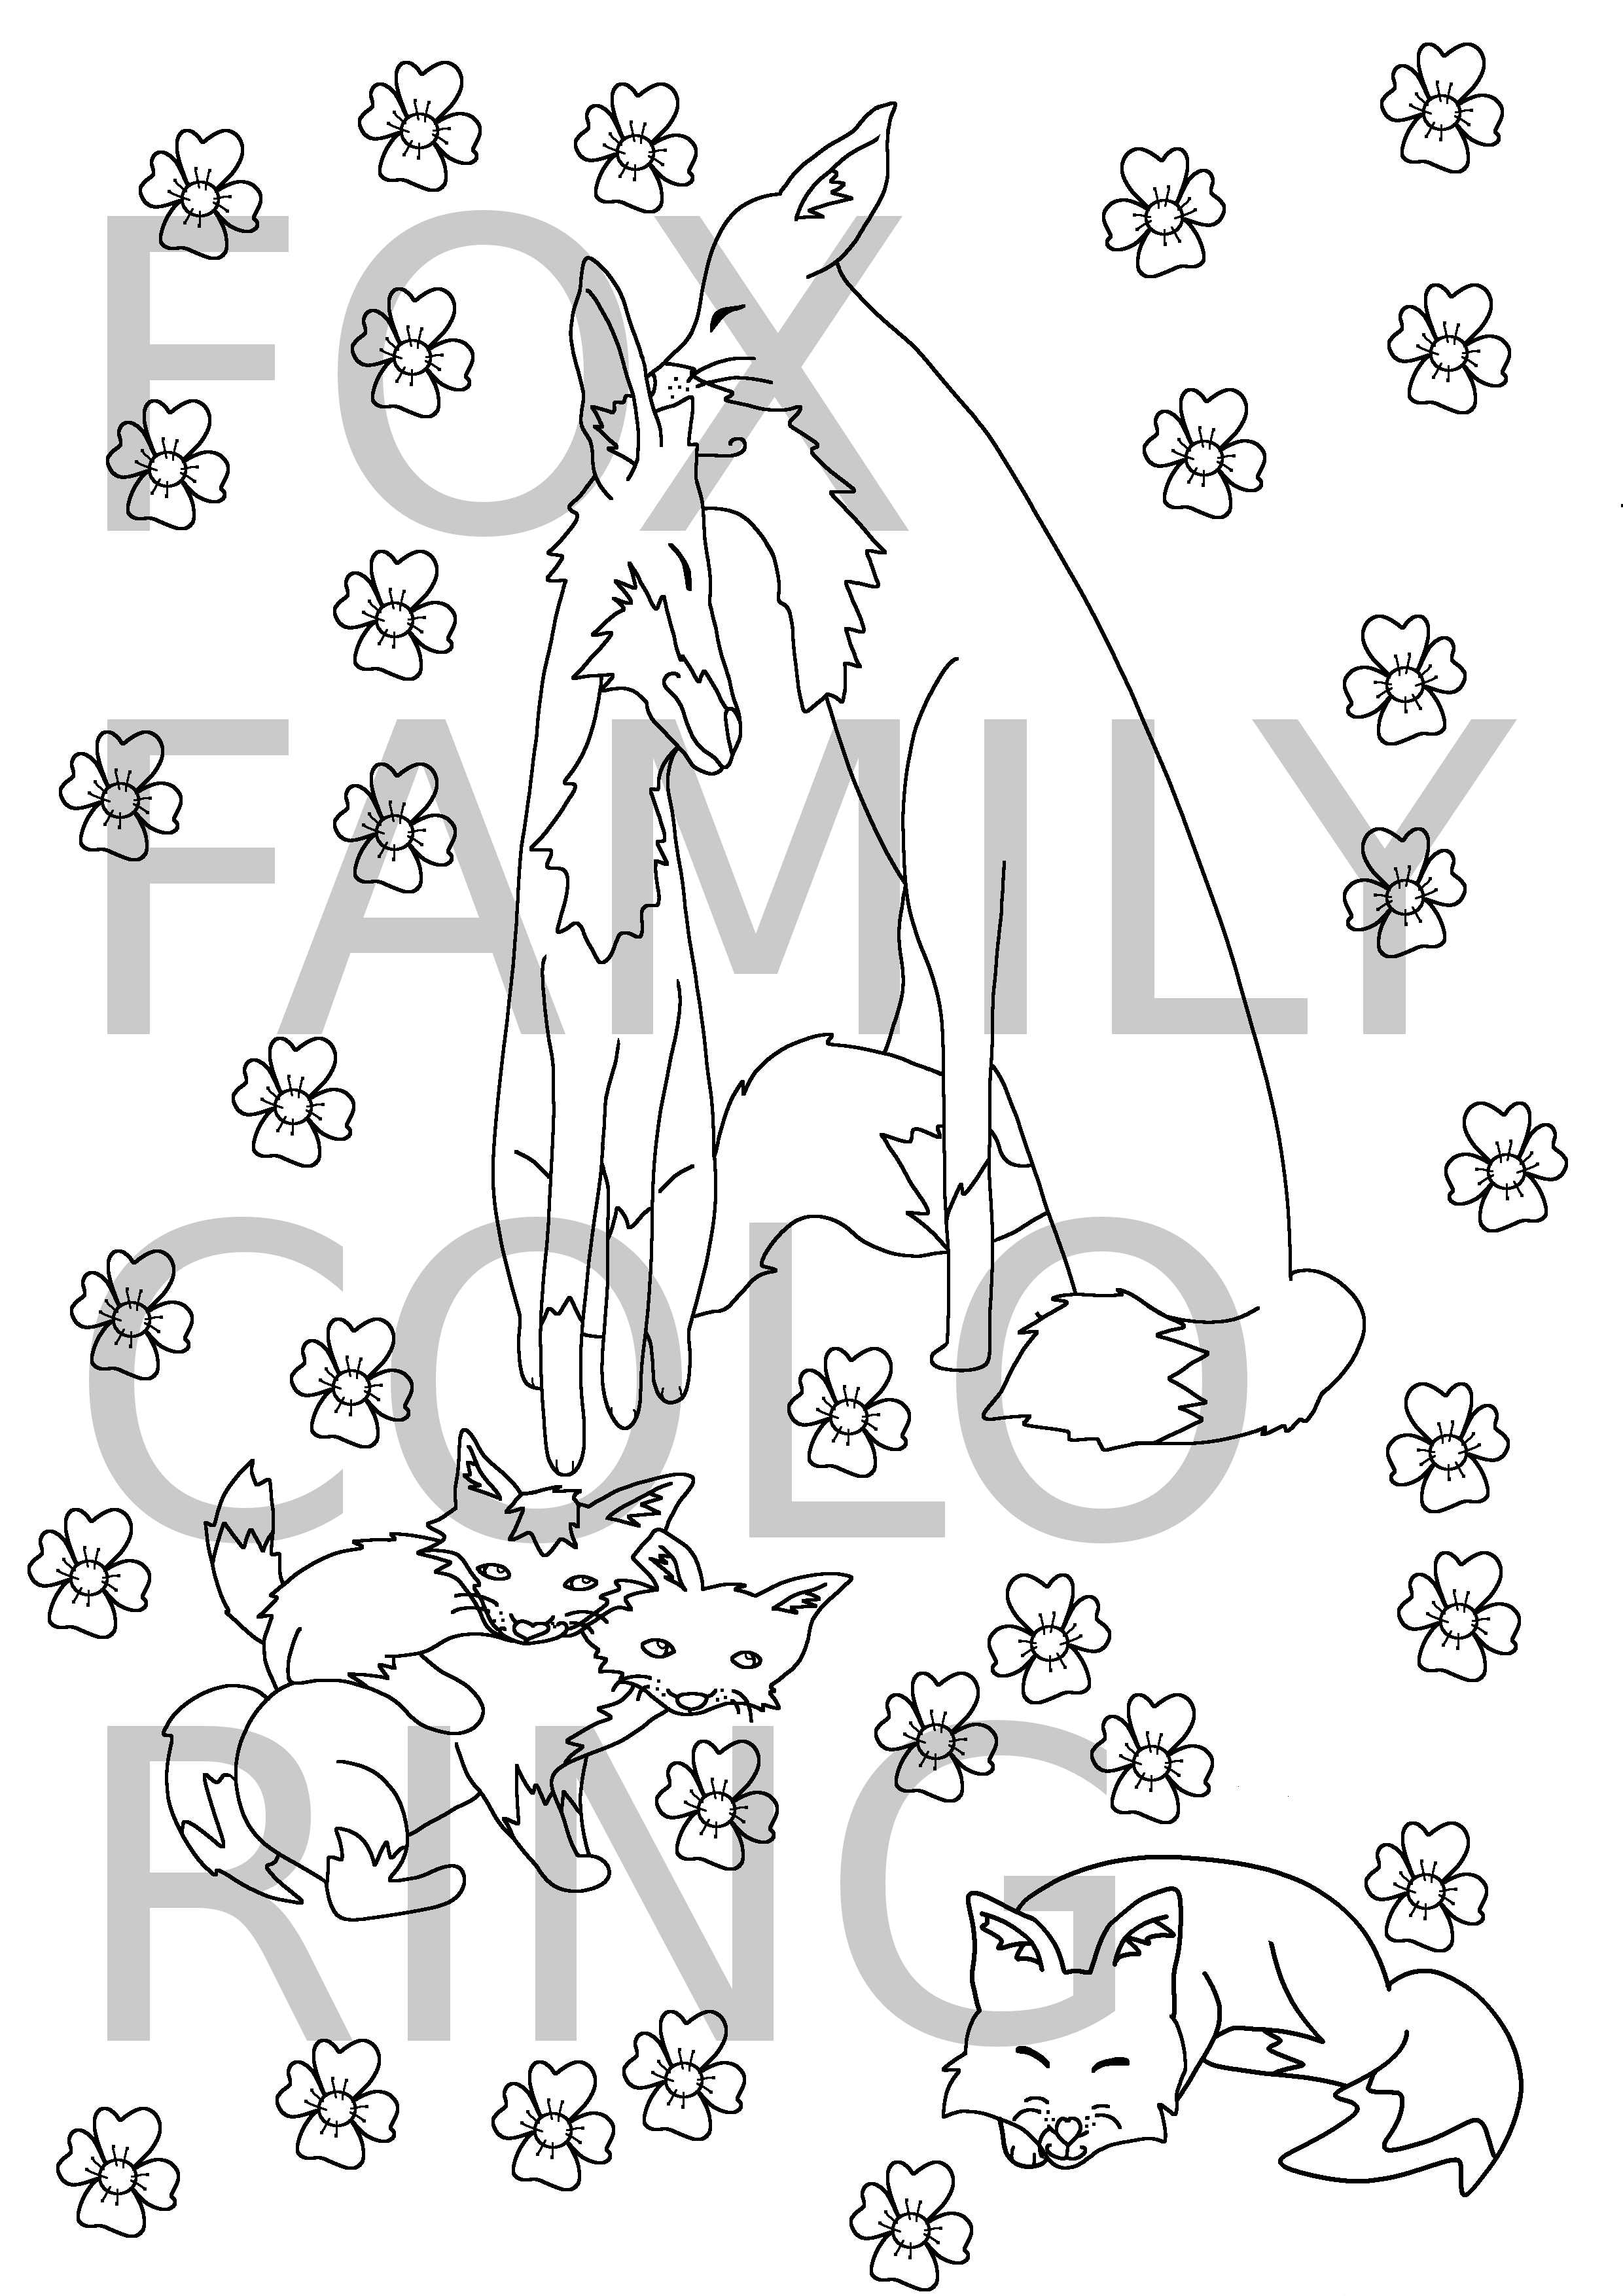 Fox Family Coloring Page · Coratison Art · Online Store Powered by ...